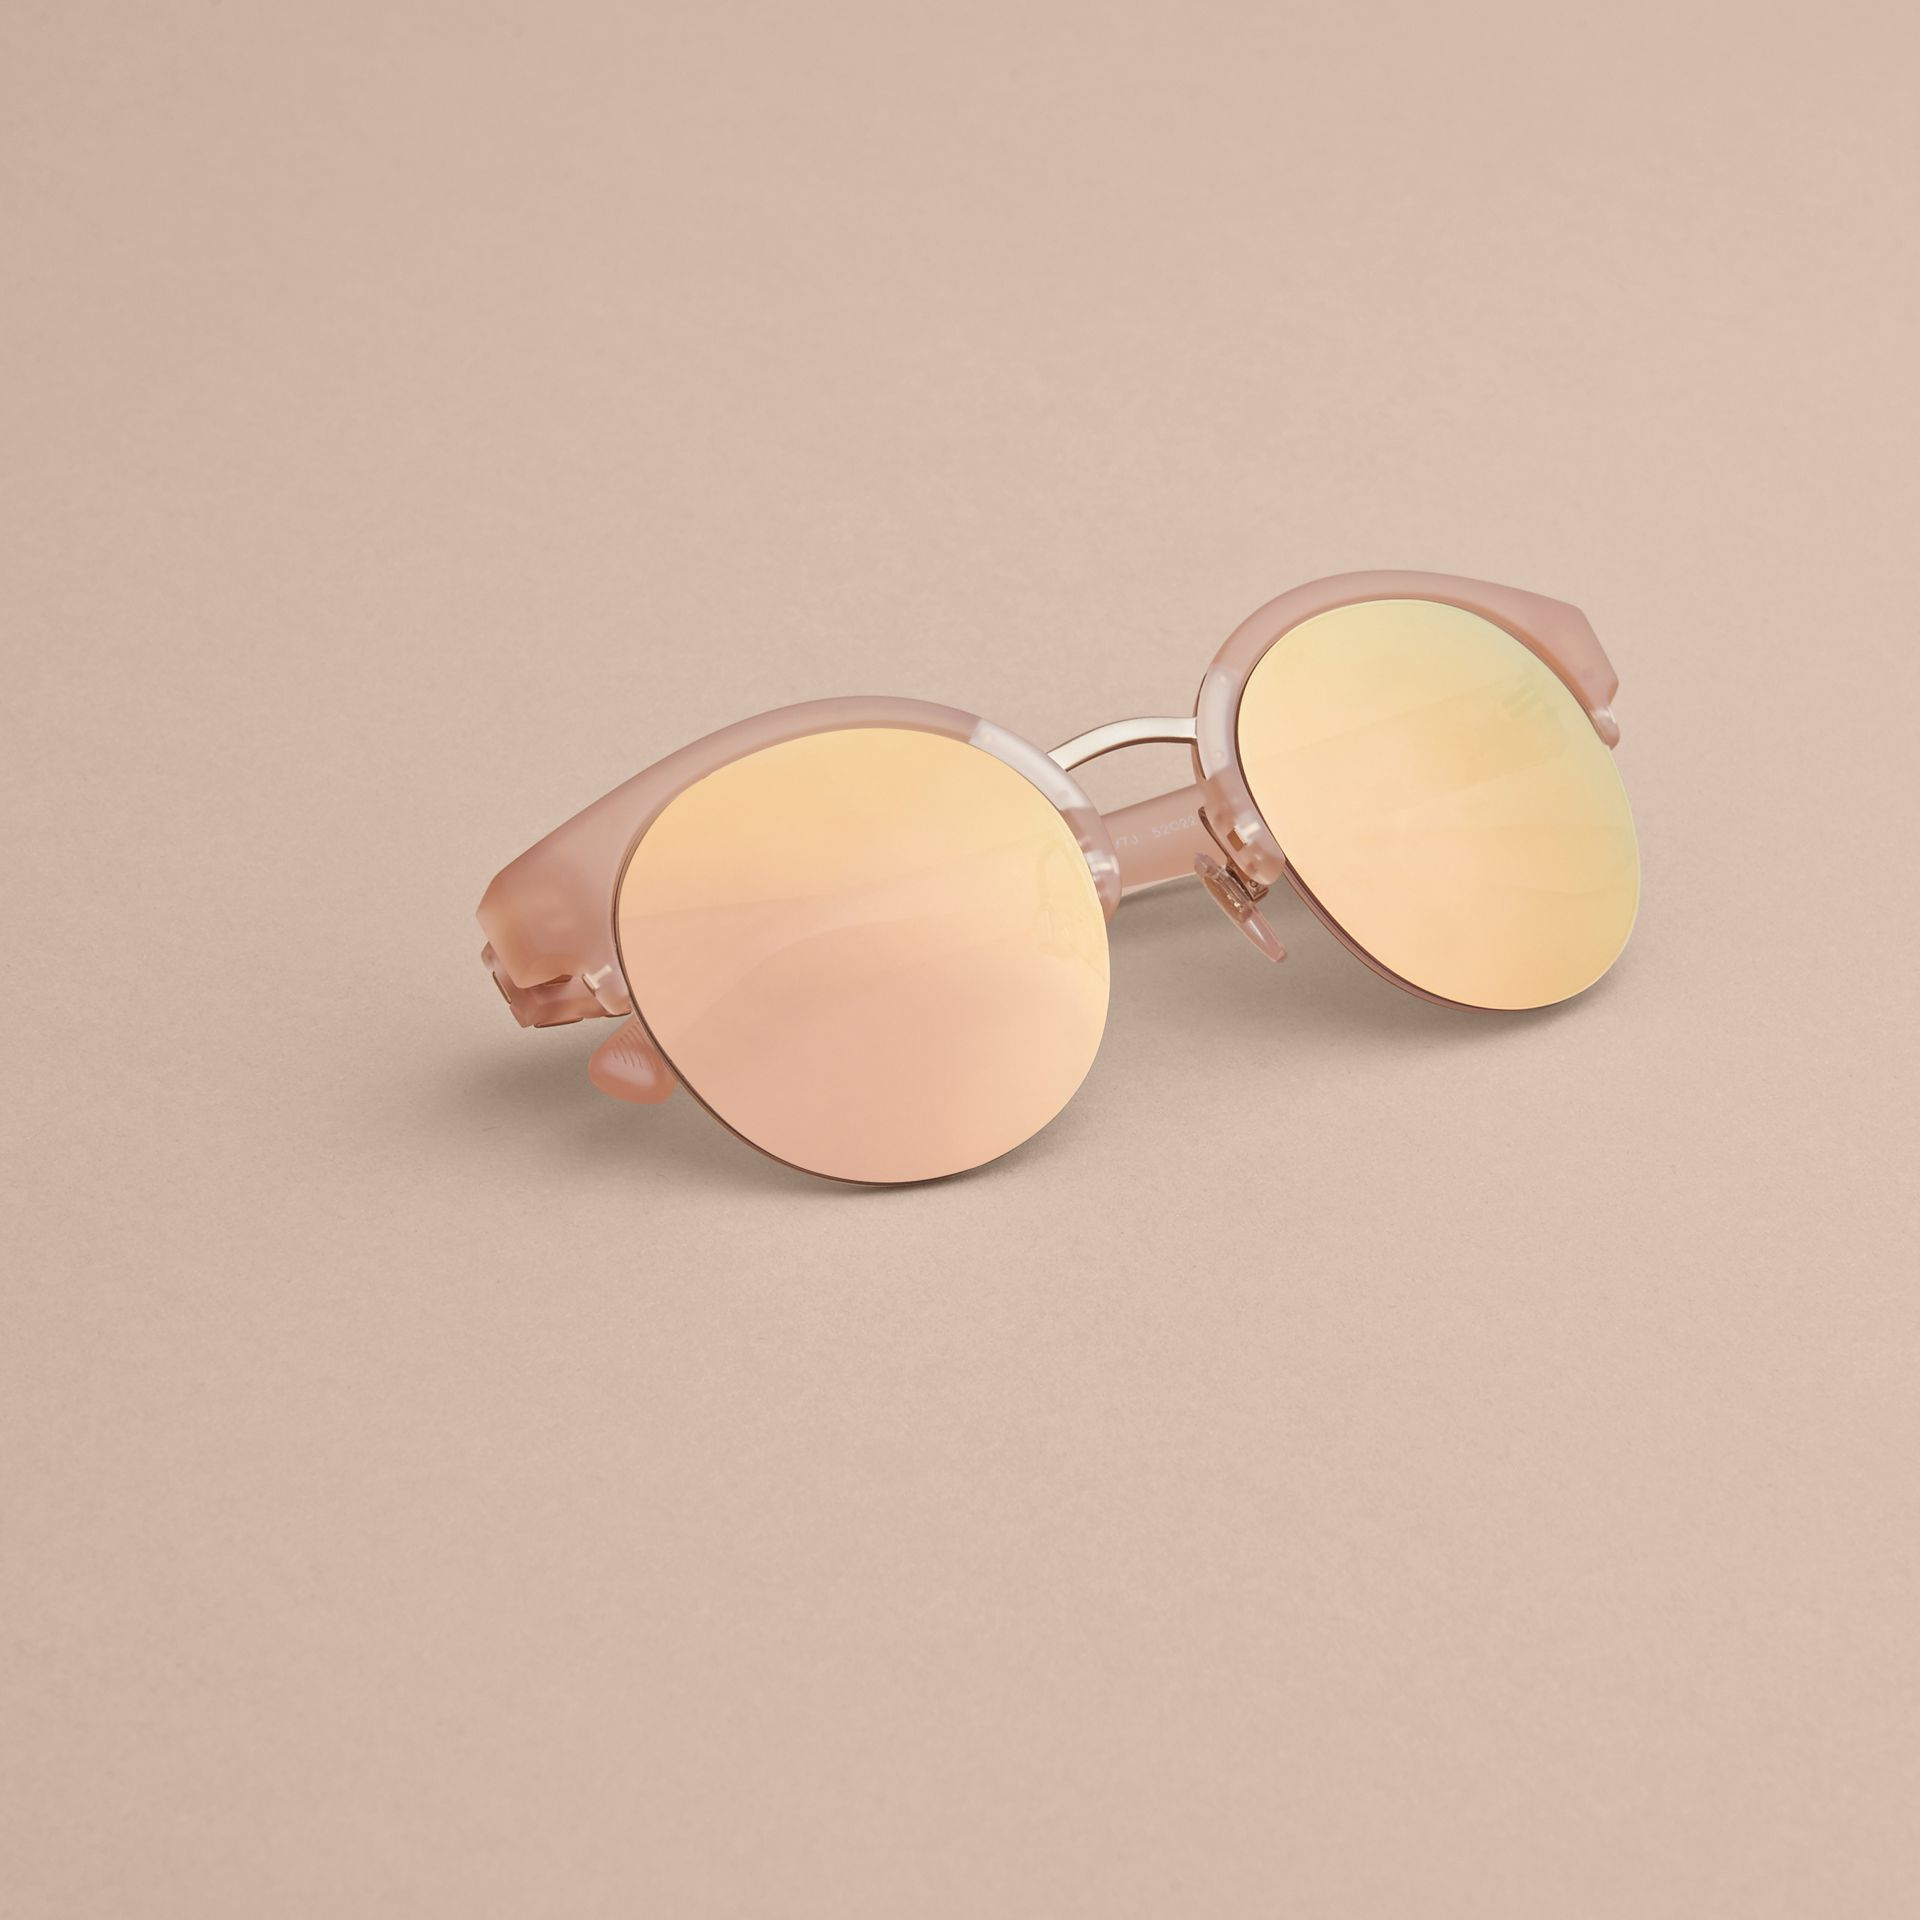 Check Detail Round Half-frame Sunglasses in Nude - Women | Burberry Canada - gallery image 5